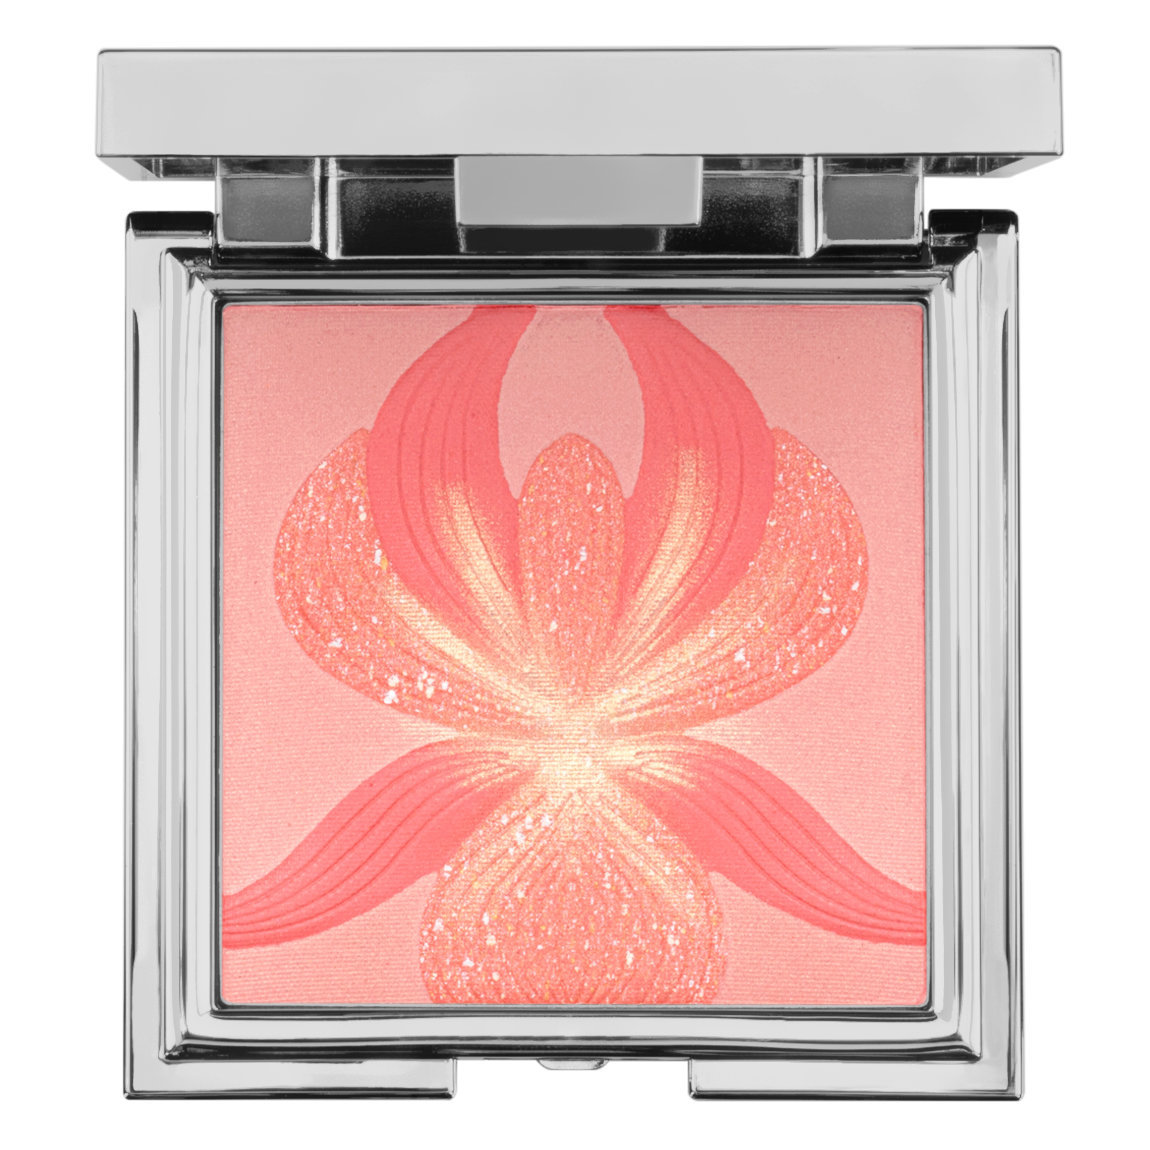 Sisley-Paris L'Orchidée Highlighting Blush Coral alternative view 1 - product swatch.